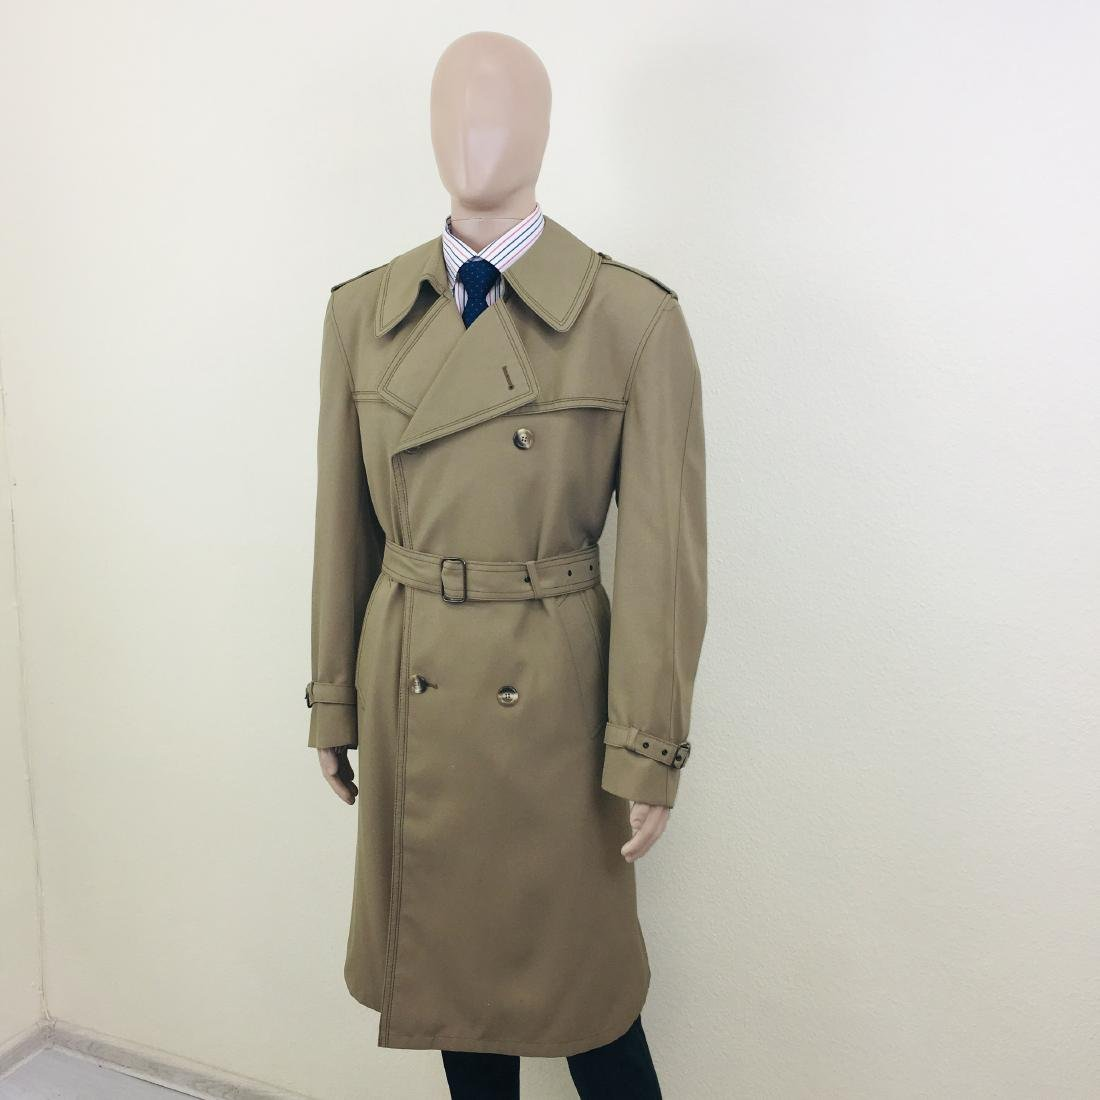 Vintage Men's Dress Boraj High Quality Trench Coat - 2